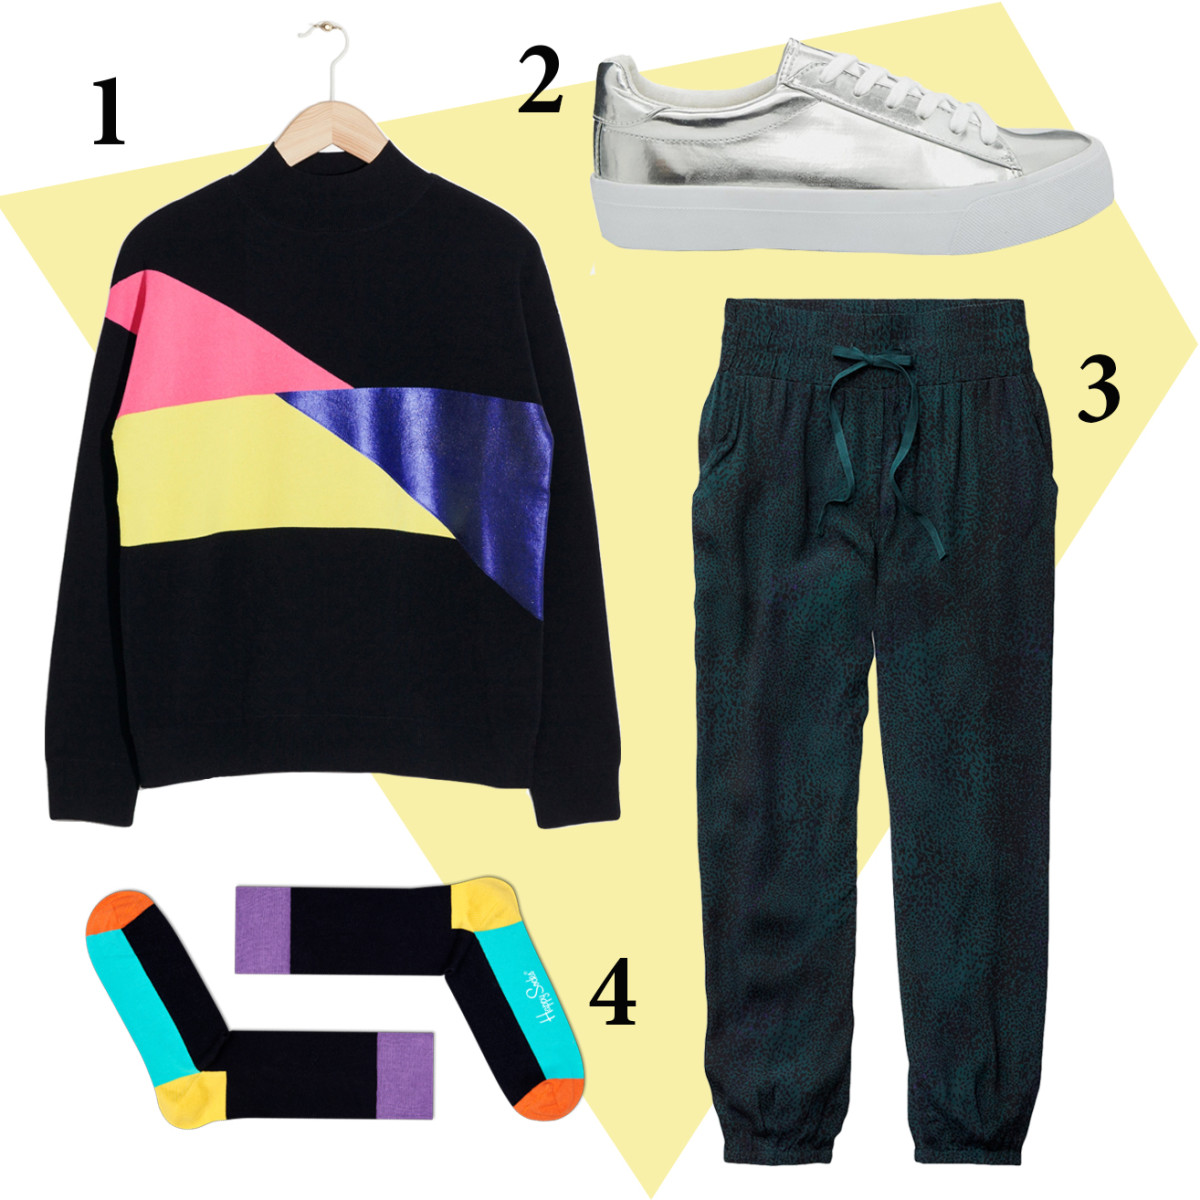 1 — & Other Stories color block knit sweater, $125, available at & Other Stories; 2 — Asos sneakers, $36, available at Asos; 3 — Talula Bayan pant, $70, available at Aritzia. 4 — Happy Socks five color socks, $12, available at Happy Socks.